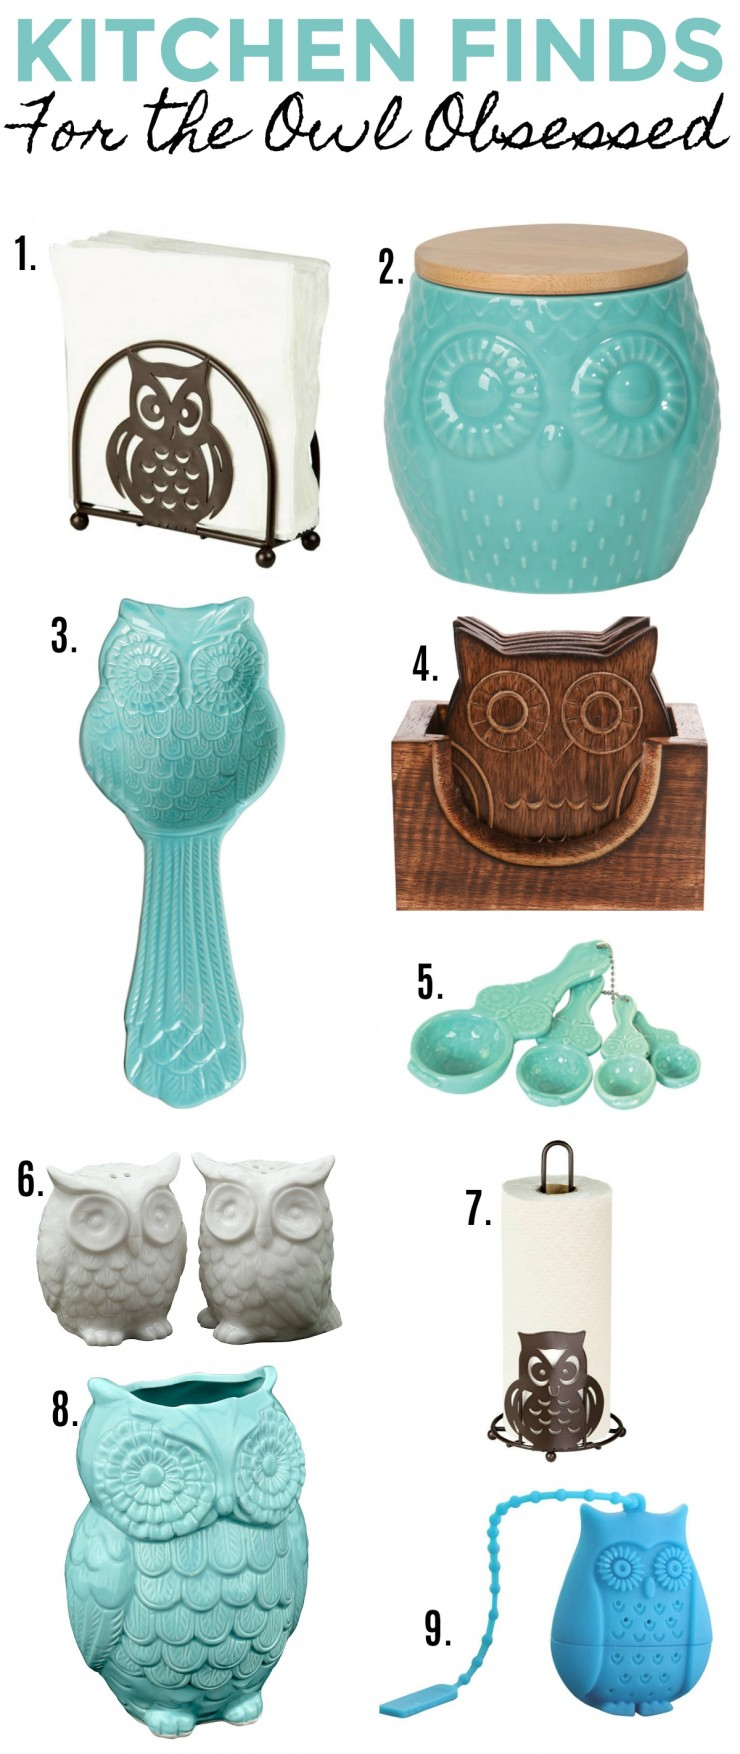 kitchen finds for the owl obsessed frugal mom eh owl canister 3 ceramic owl cooking spoon rest 4 wooden owl coasters 5 ceramic owl measuring spoon set 6 ceramic owl salt and pepper shaker 7